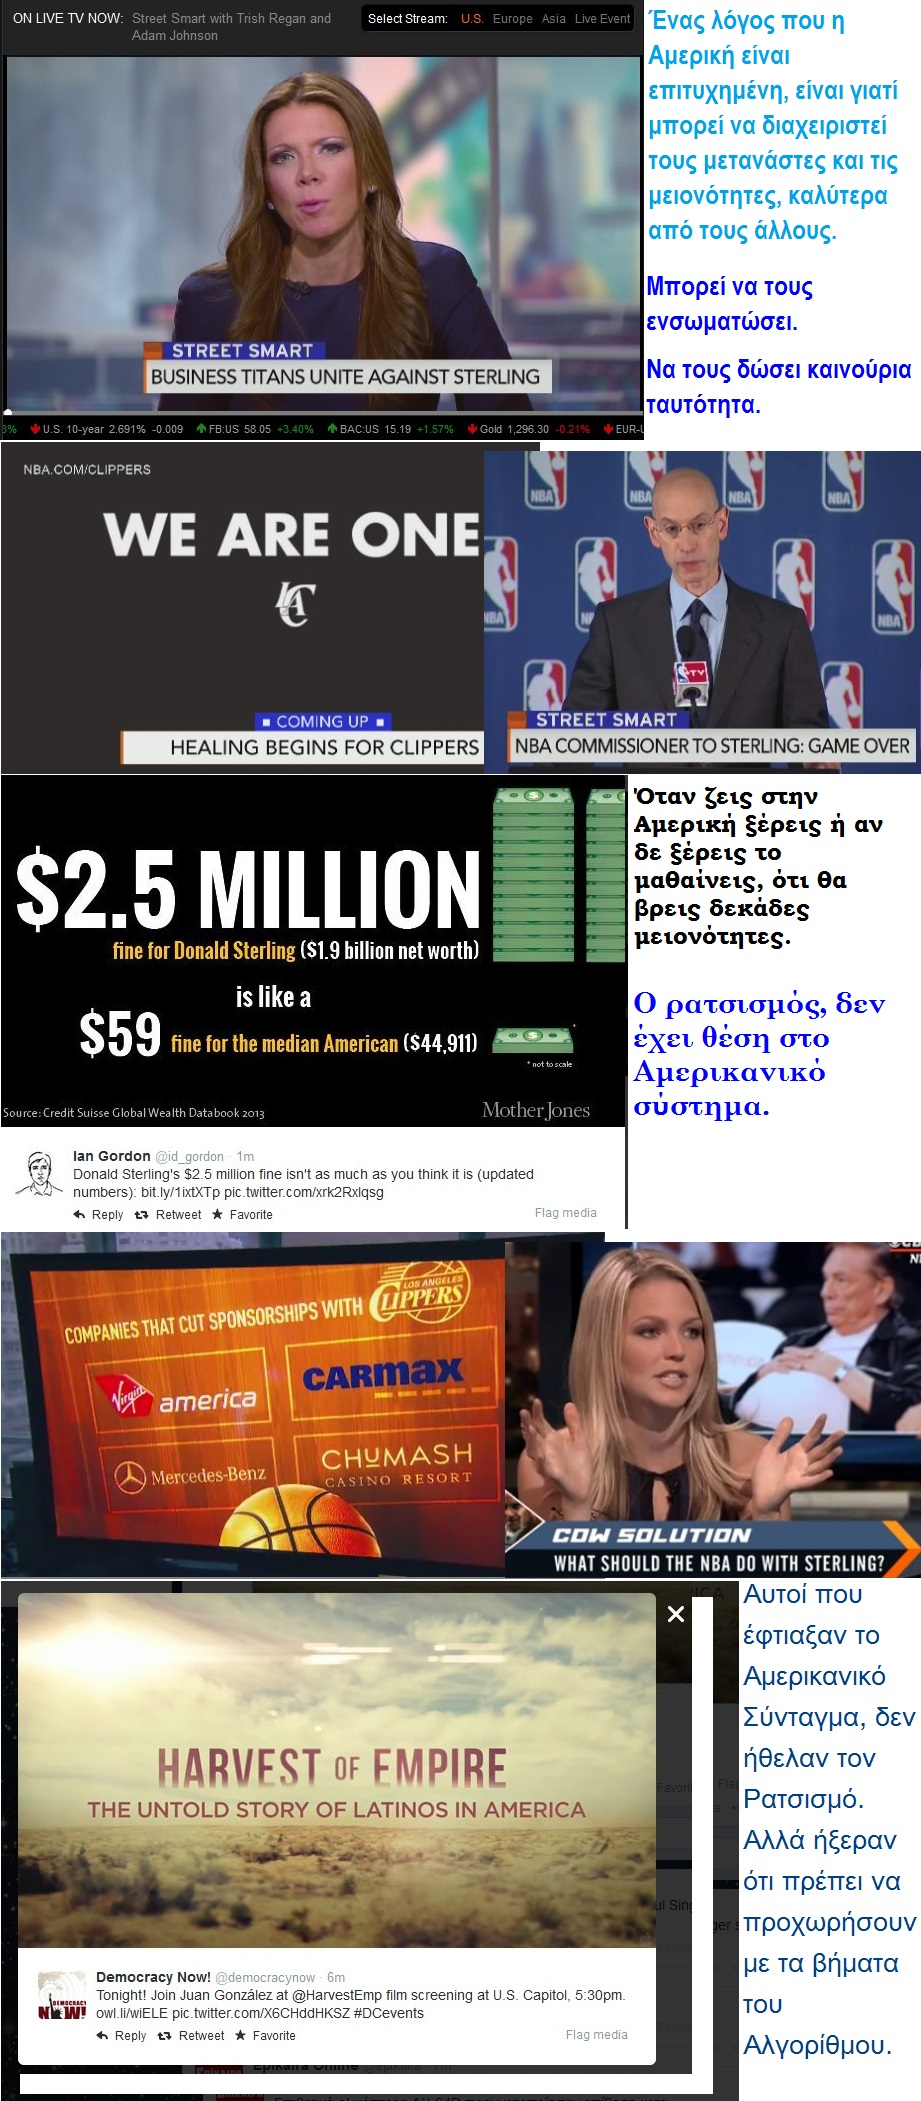 BLOOMBERG NBA DONALD STERLING RACISM 01 290414  (16)